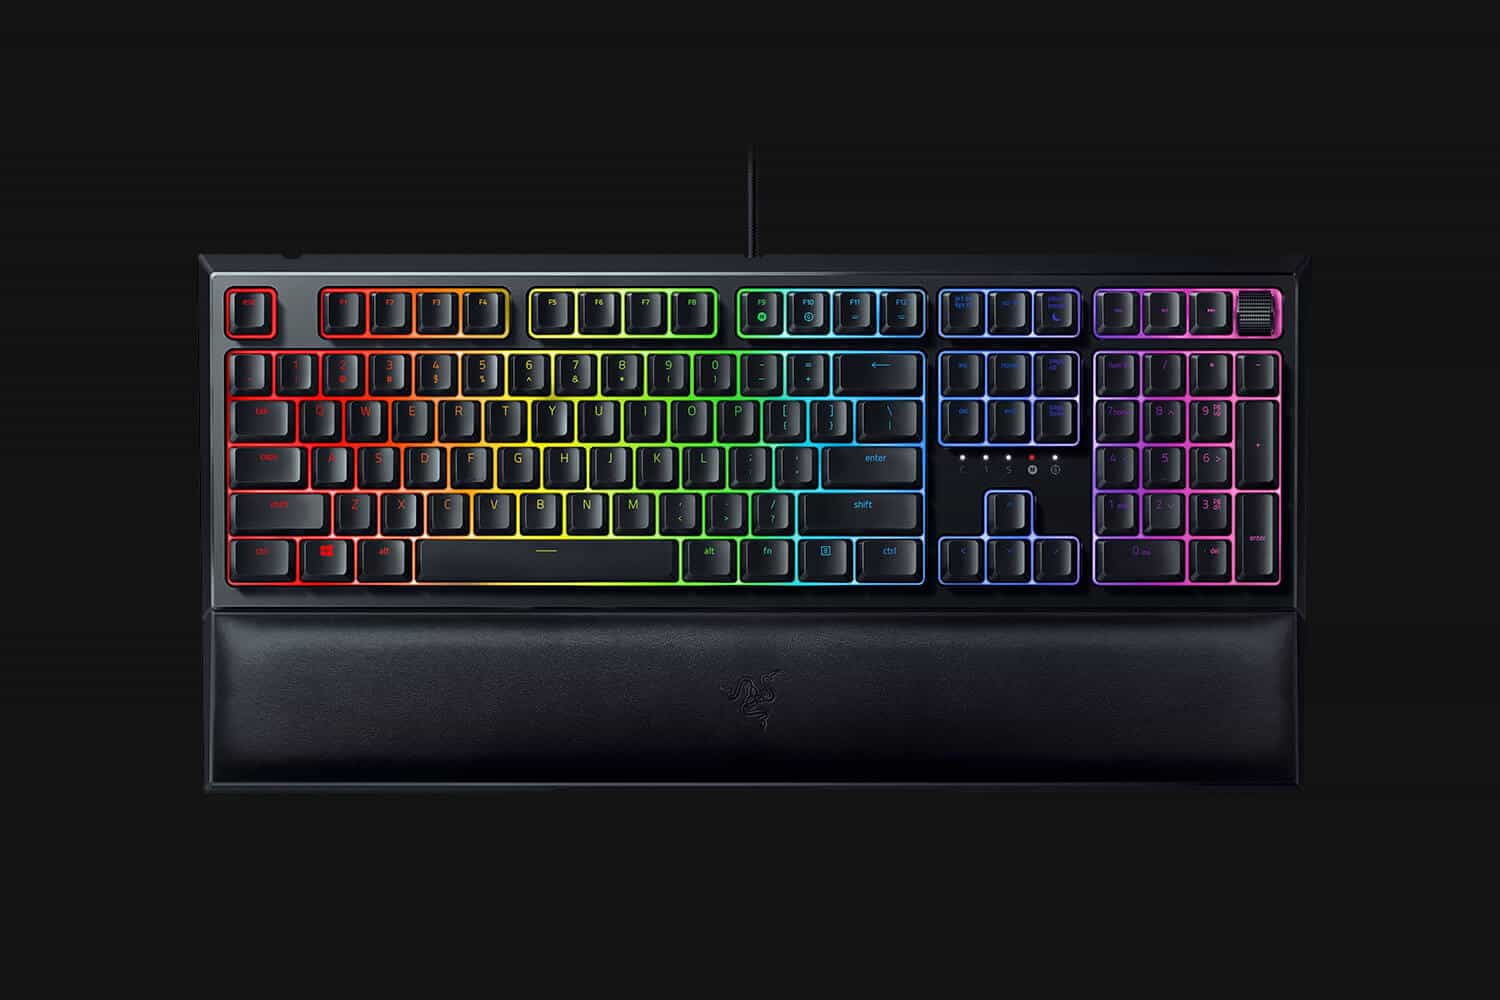 Razer Ornata v2 Gaming Keyboard Review – All About the Stroke - Fortress of Solitude